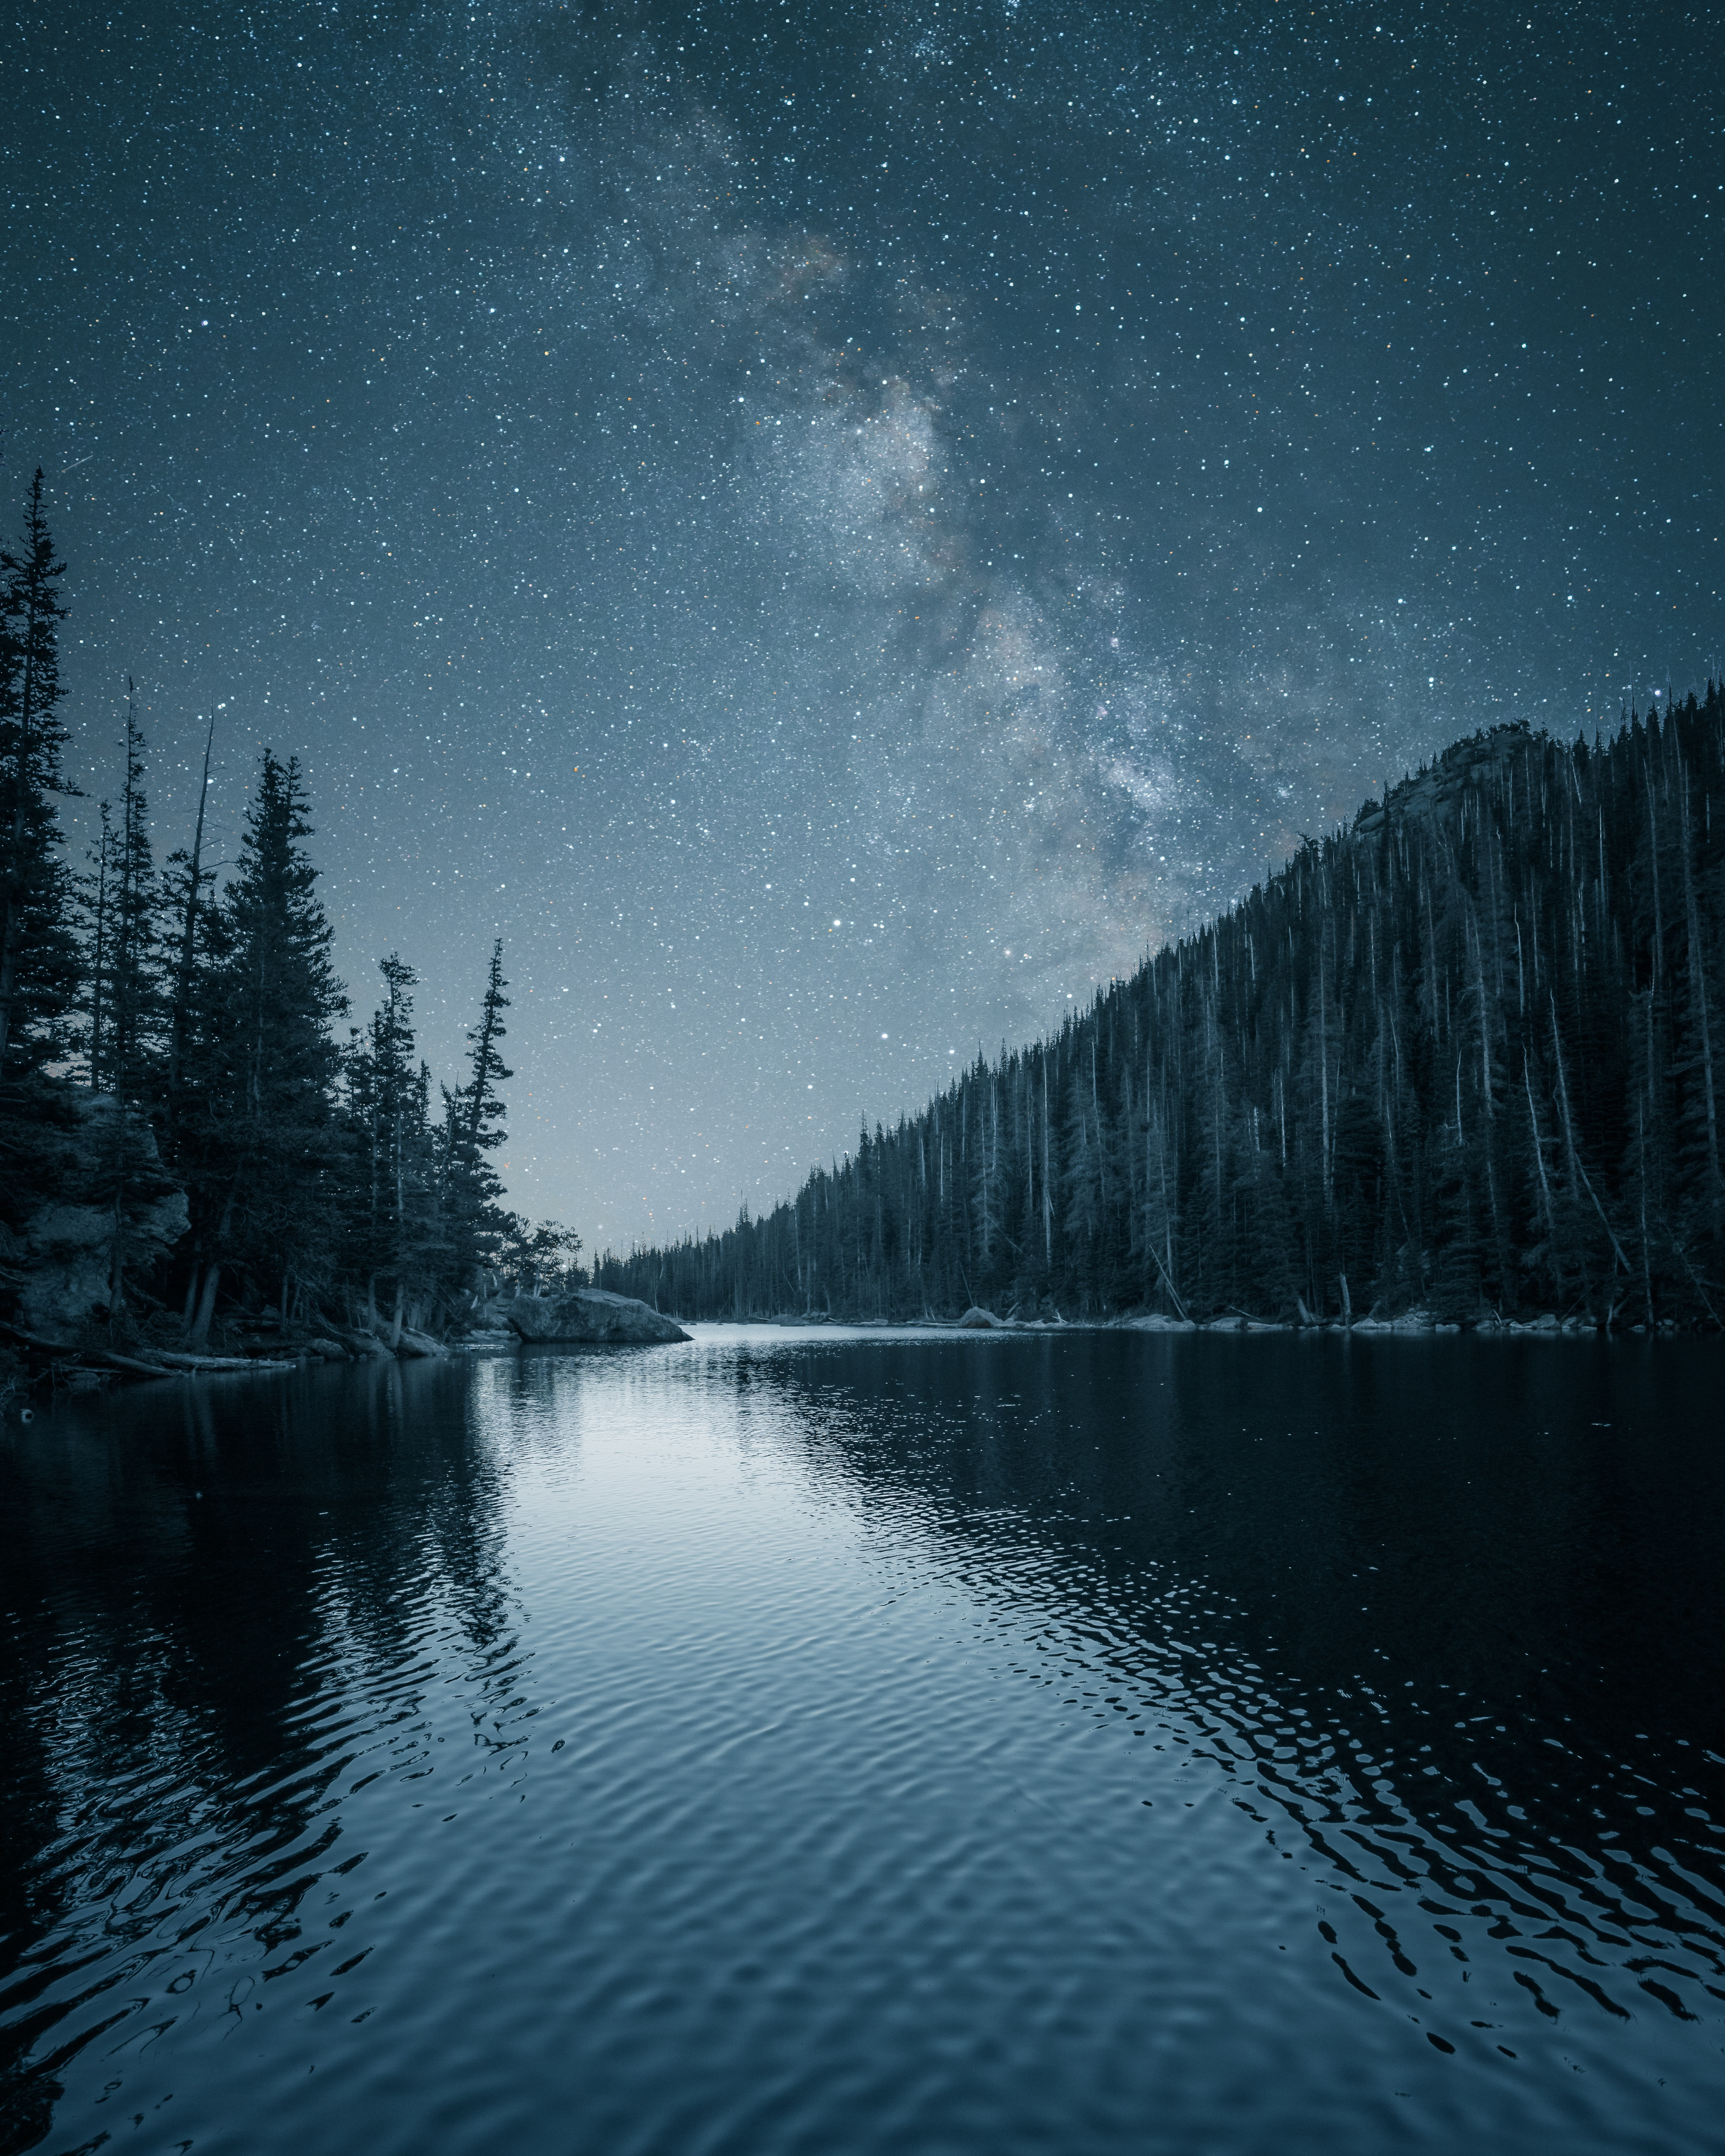 79001 download wallpaper Night, Landscape, Nature, Rivers, Trees, Starry Sky screensavers and pictures for free